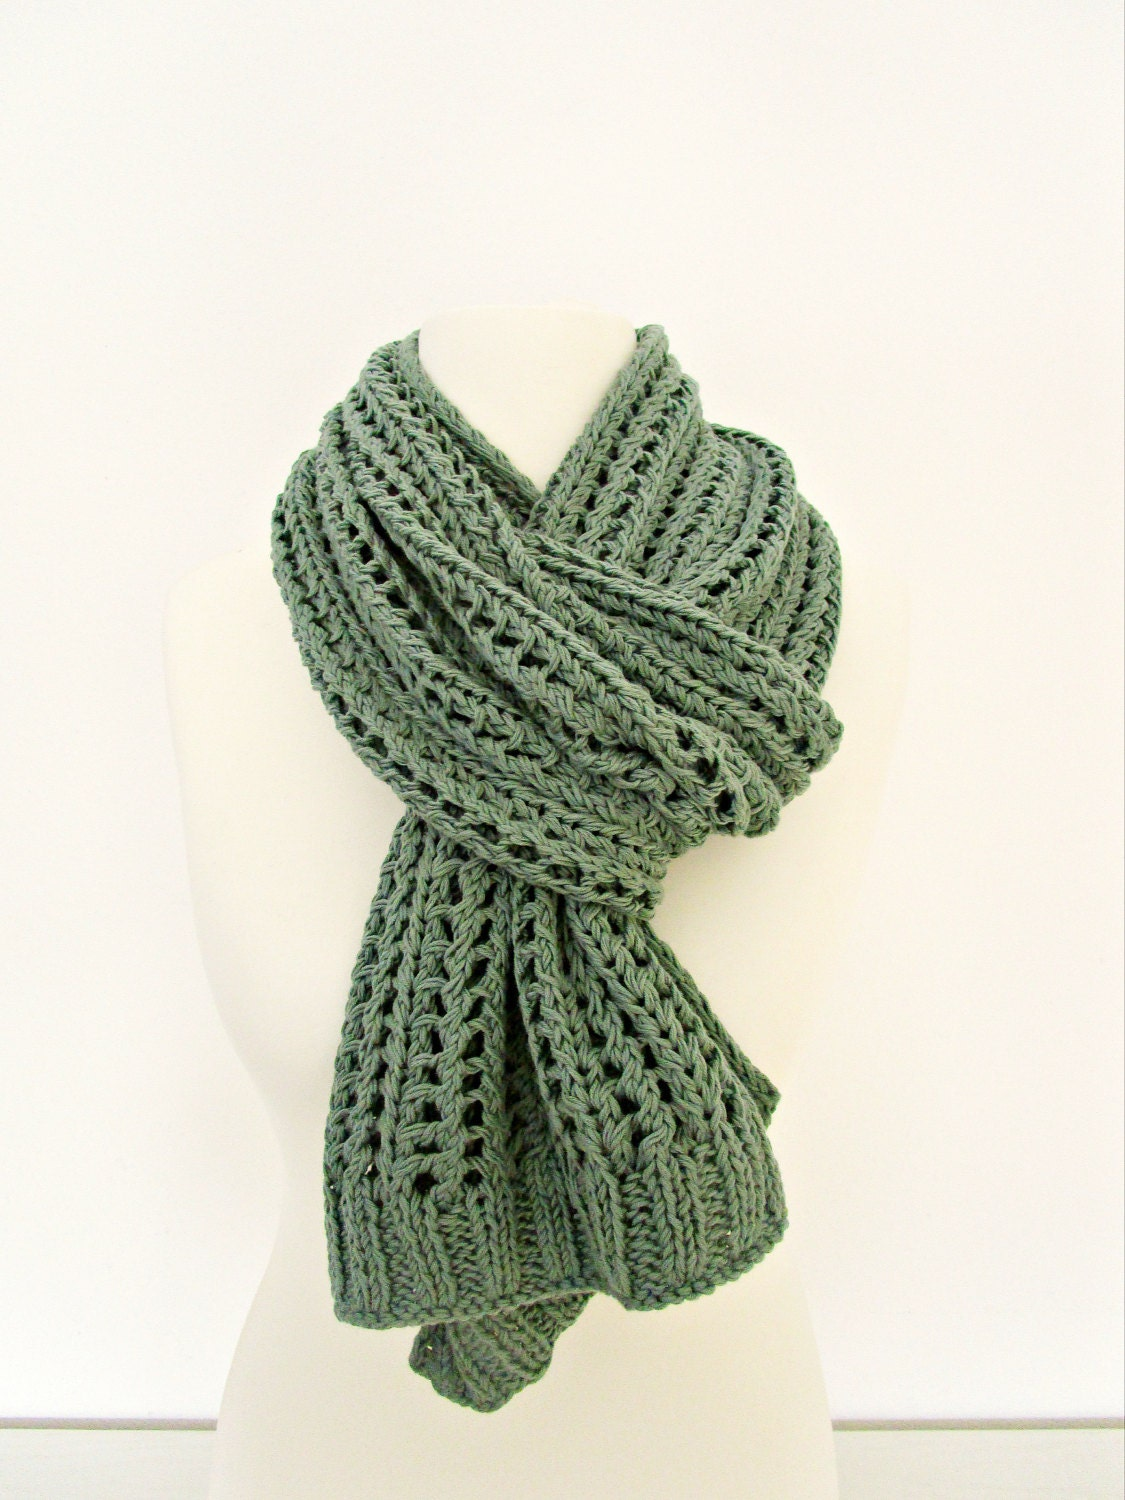 Knitted scarves are the perfect handmade gift: They're easy to make, one size fits all, and small imperfections give them charm. Plus, you can choose needle and yarn sizes to .